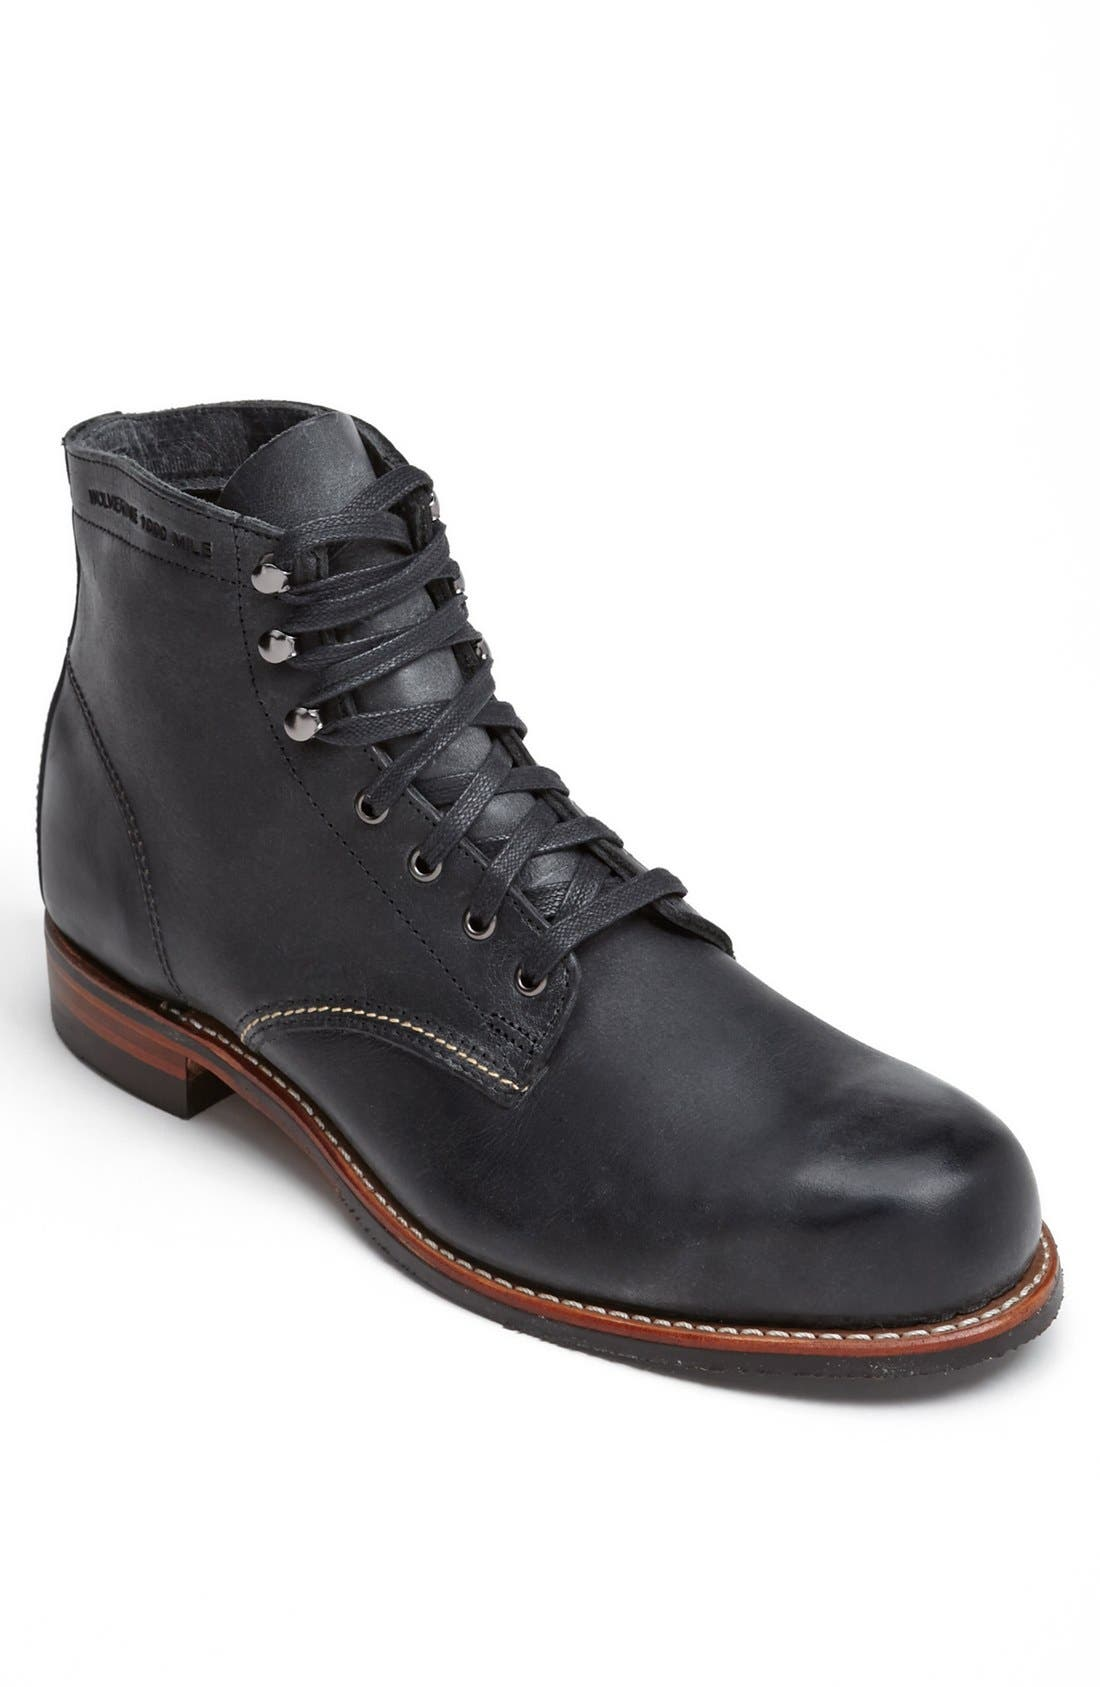 Alternate Image 1 Selected - Wolverine '1000 Mile - Morley' Round Toe Boot